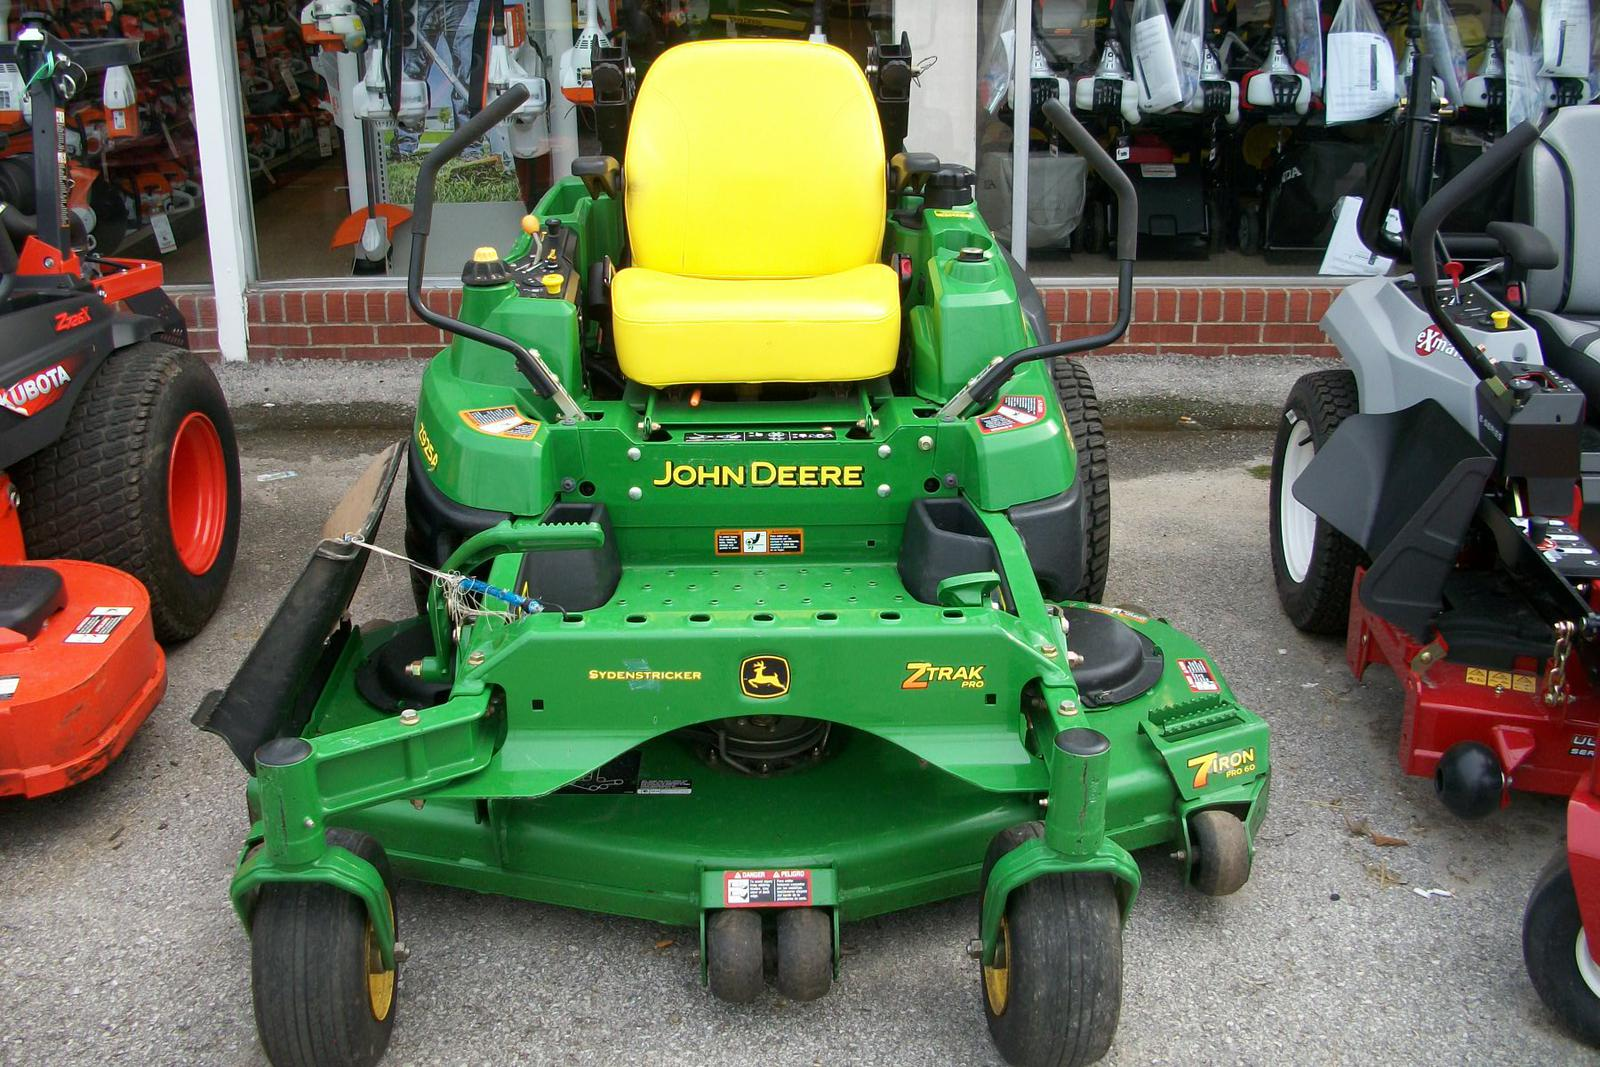 2011 John Deere Z925a 27hp Pro 60inch 7iron Deck Rider For. John Deere. High Capacity John Deere 60 Inch Mower Deck Diagram At Scoala.co